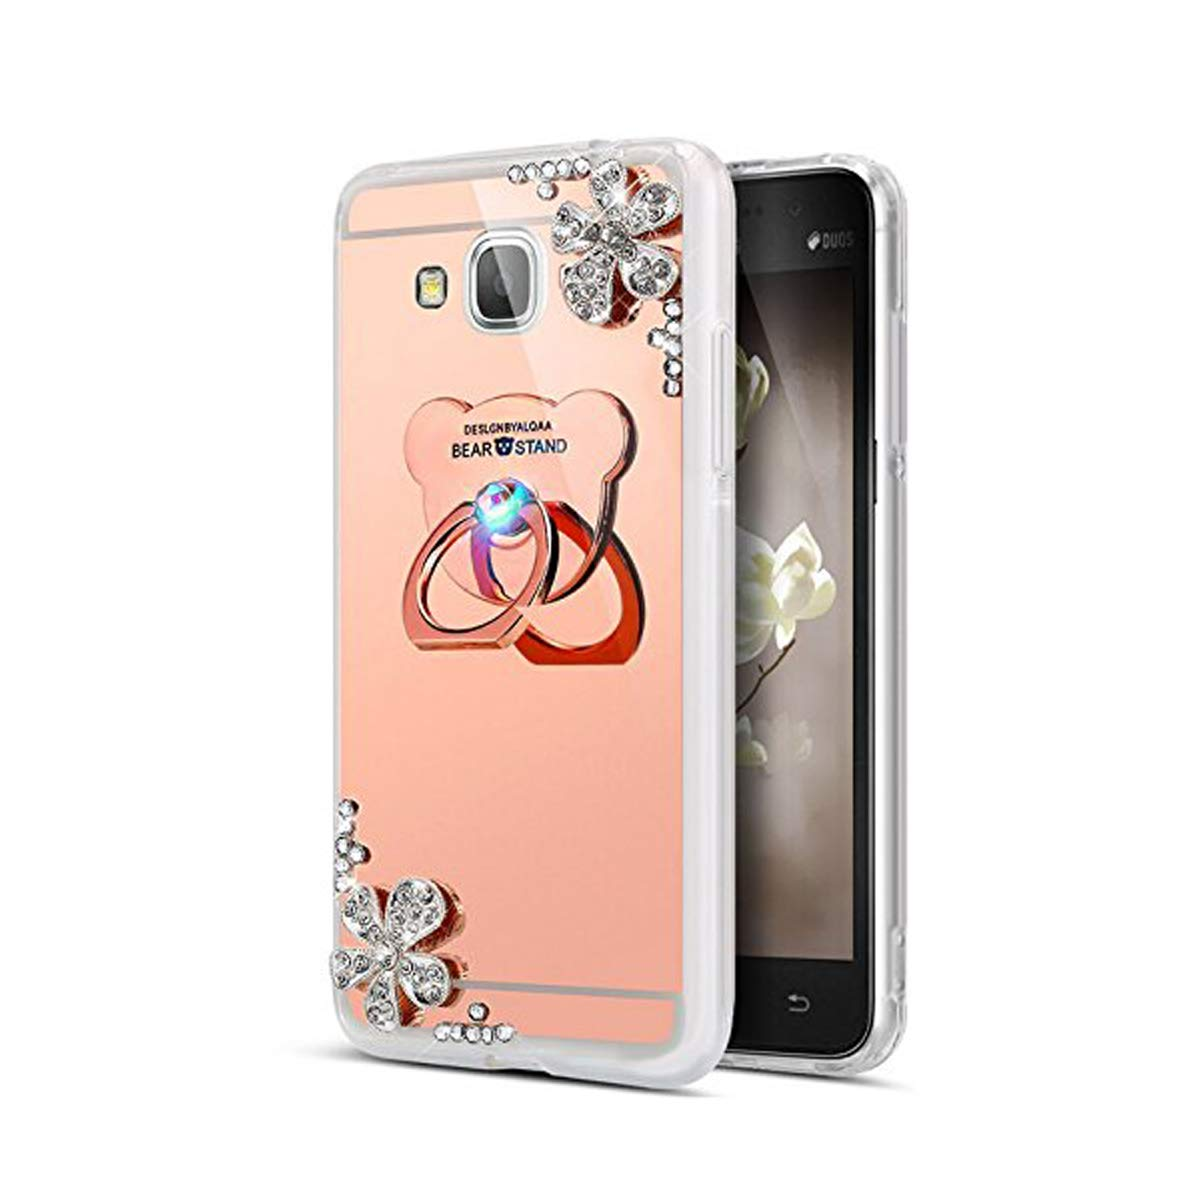 Coque Galaxy J3 2017 Europe Version Glitter Silicone, Miroir Coque pour Samsung Galaxy J3 2017, Ekakashop Luxe Beau 3D Bling Shiny Brillant Mirror Effect Cover Diamant de Fleur D'or Motif Soft TPU Silicone Transparent avec Strass Gliter Sparkle Protecteur